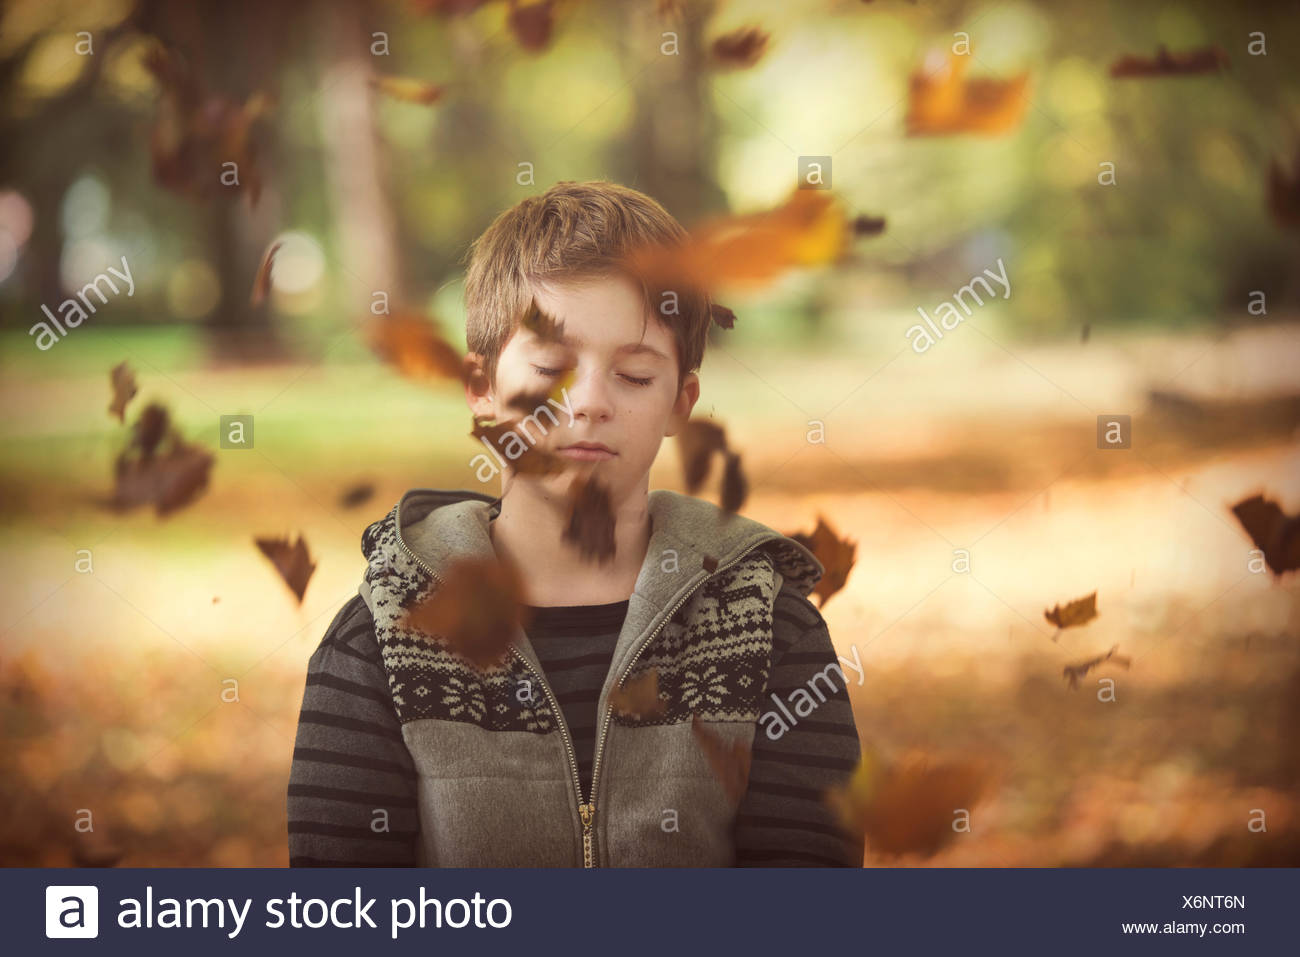 Boy standing in park with autumn leaves falling, Bulgaria - Stock Image